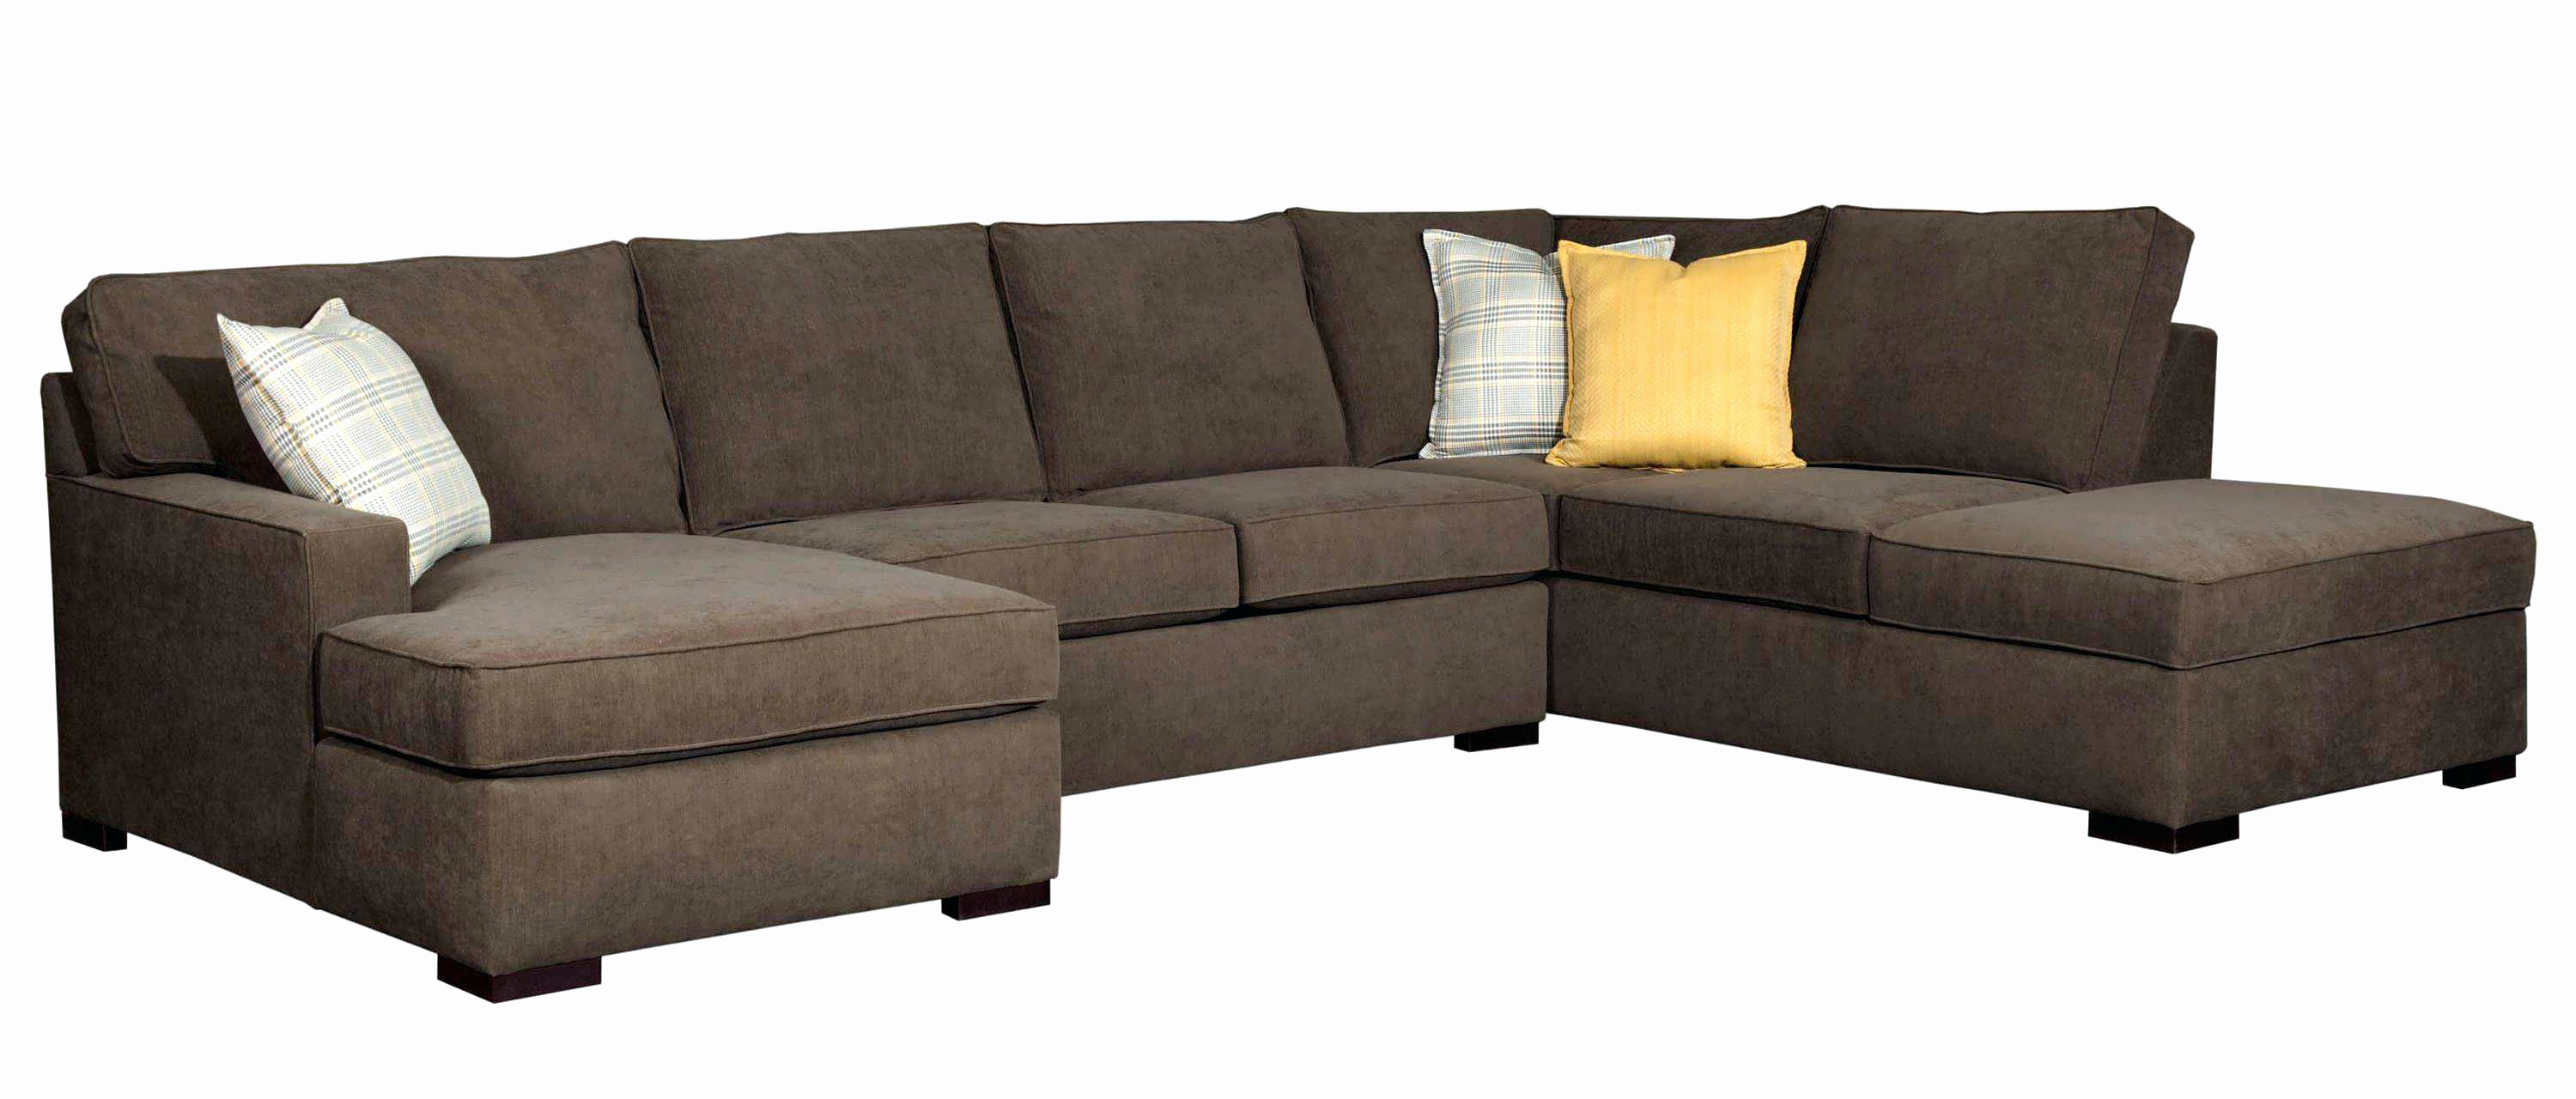 Funda sofa Chaise Longue Mejor Fundas De sofas Cherlon Simple Fundas sofas Chaise Longue Of 37  Innovador Funda sofa Chaise Longue